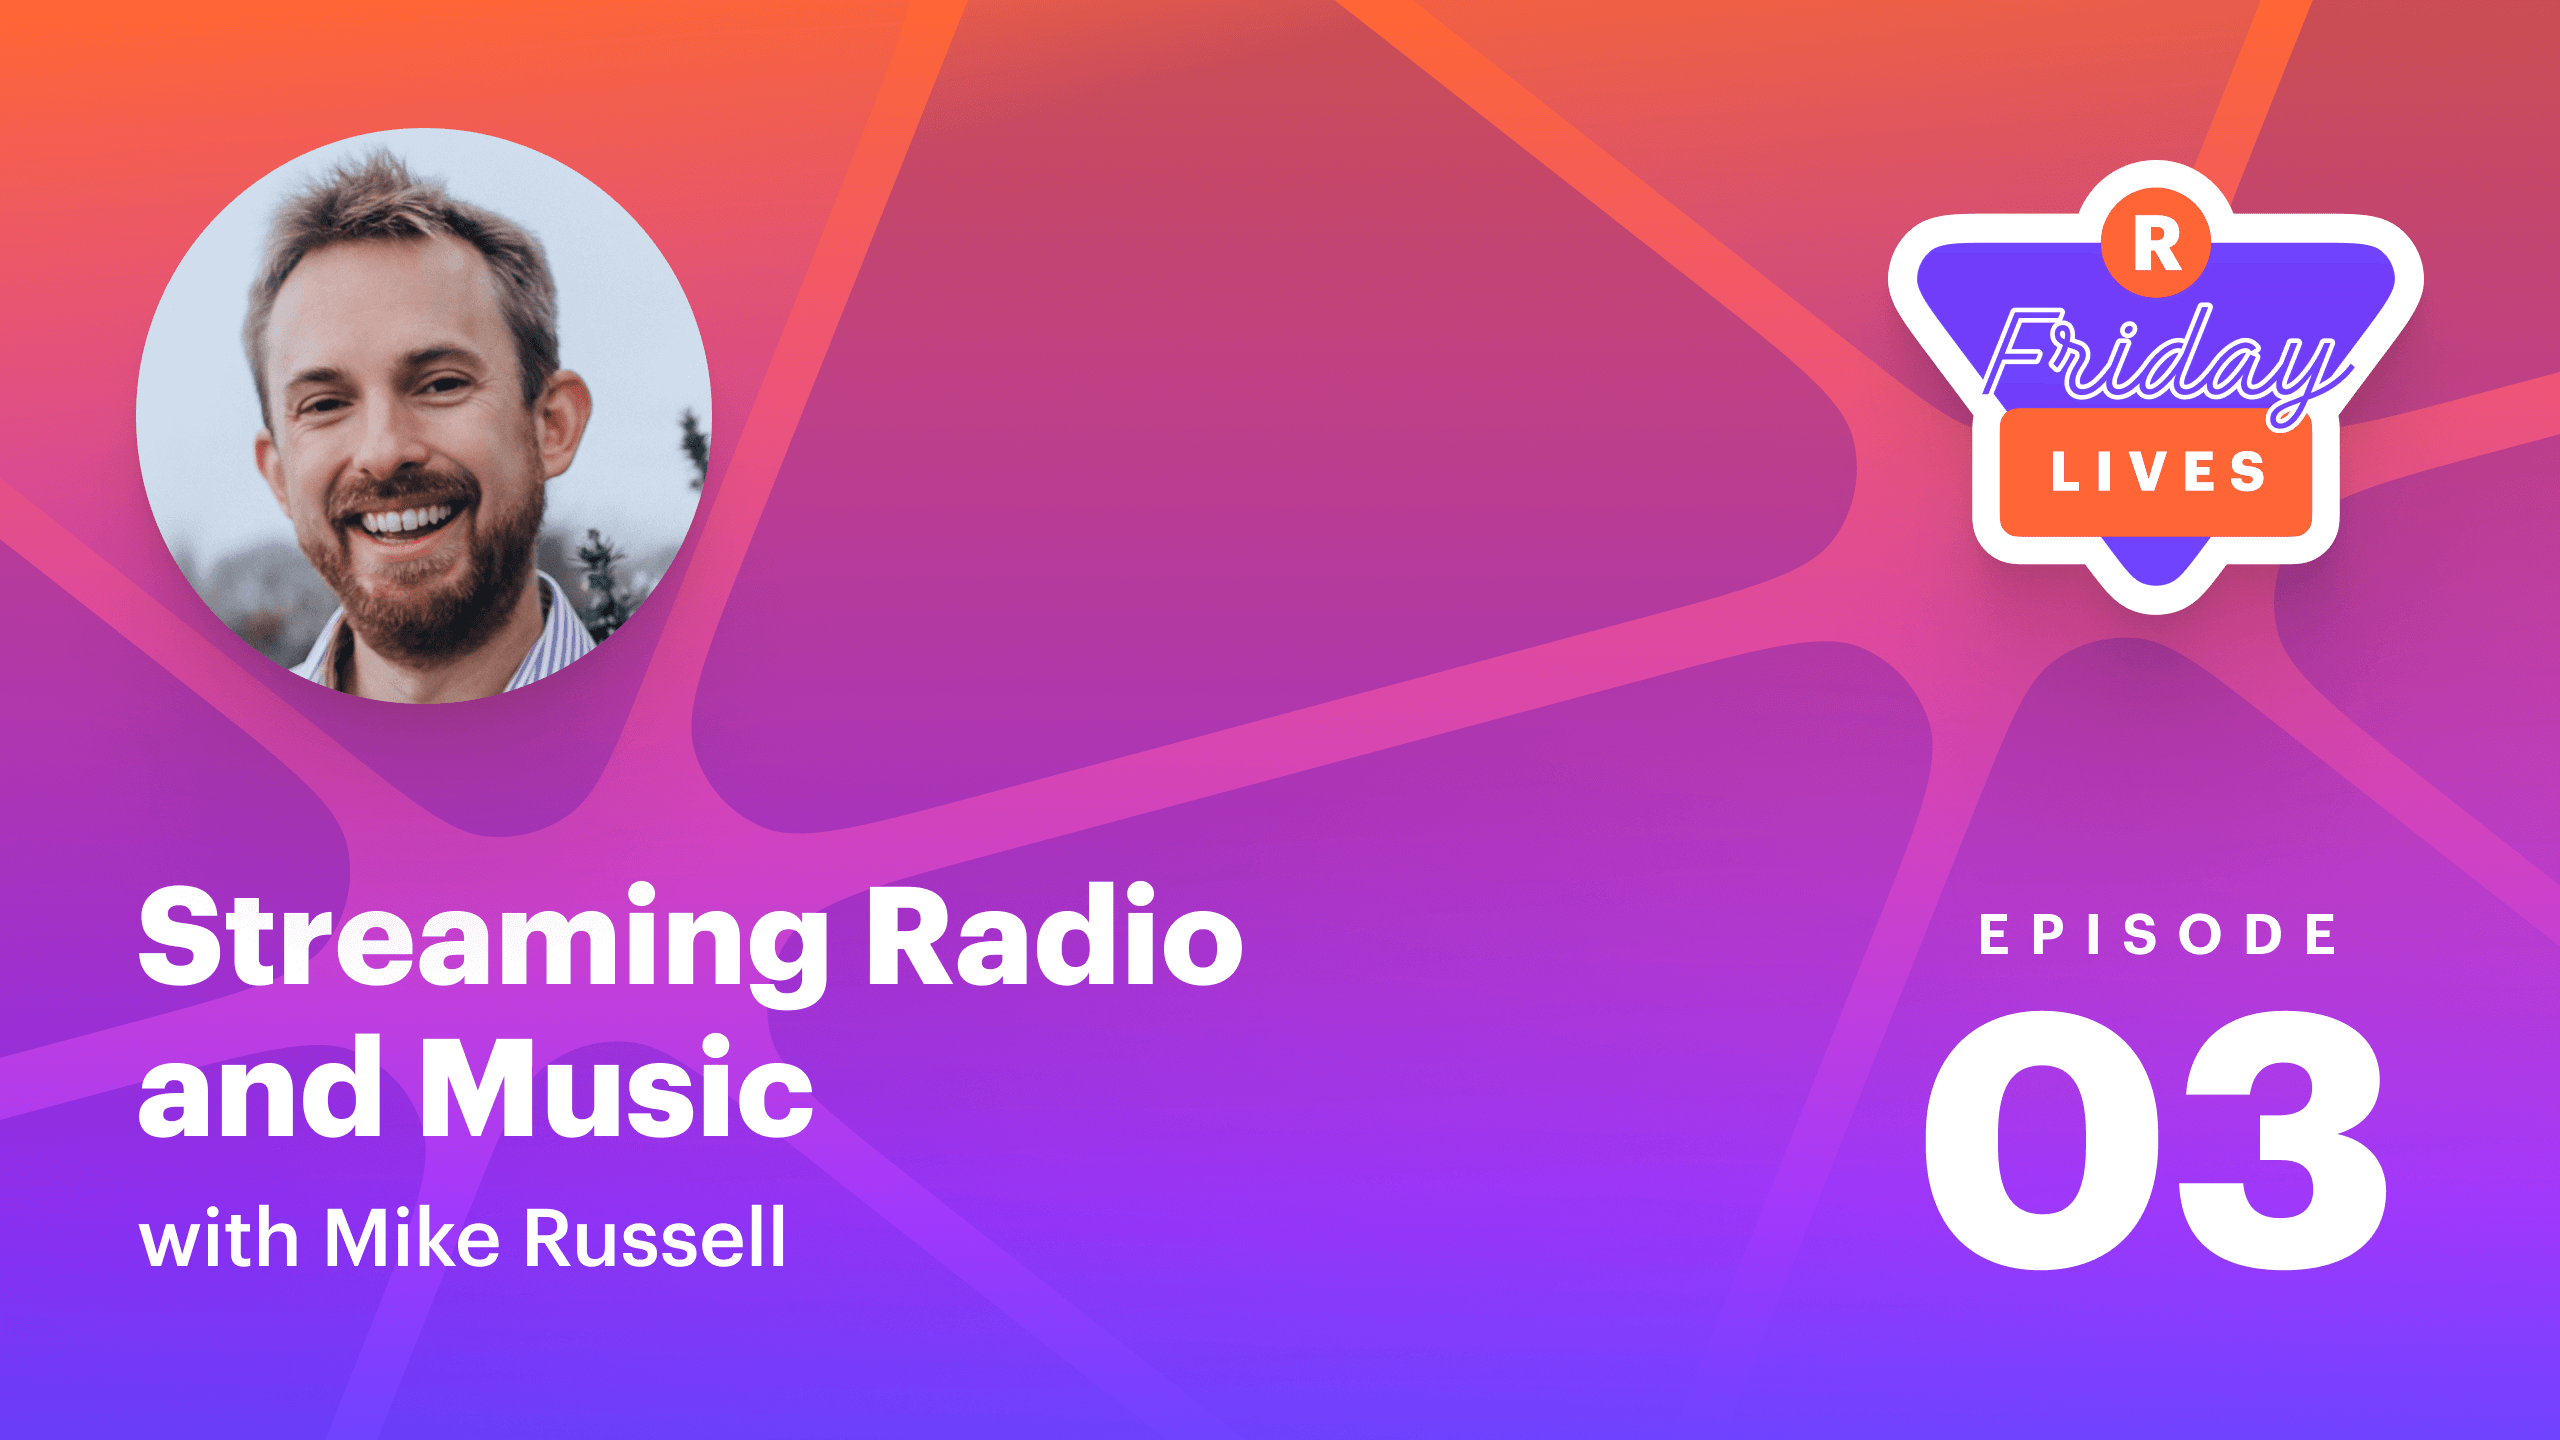 Streaming radio and music with Mike Russell